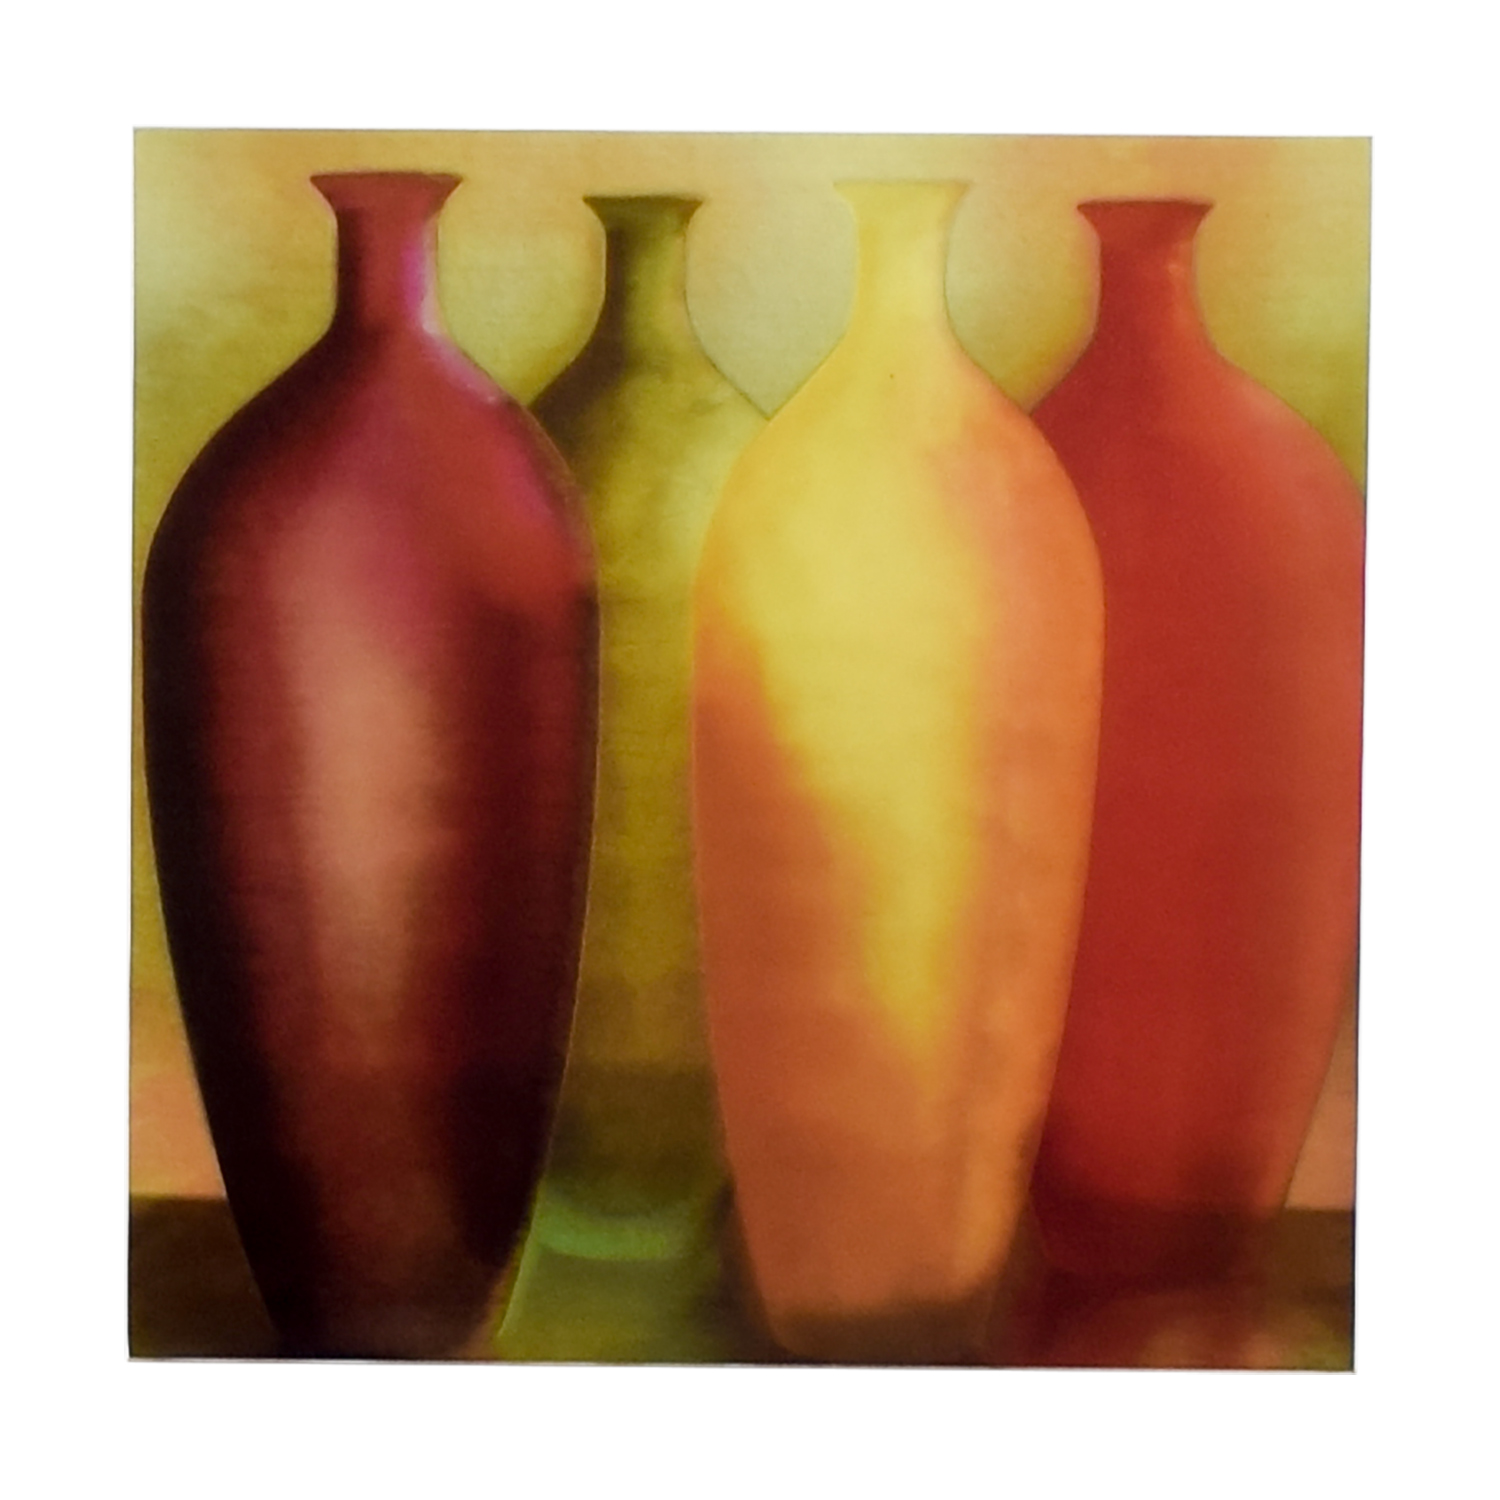 Vase Wall Art on Canvas nj